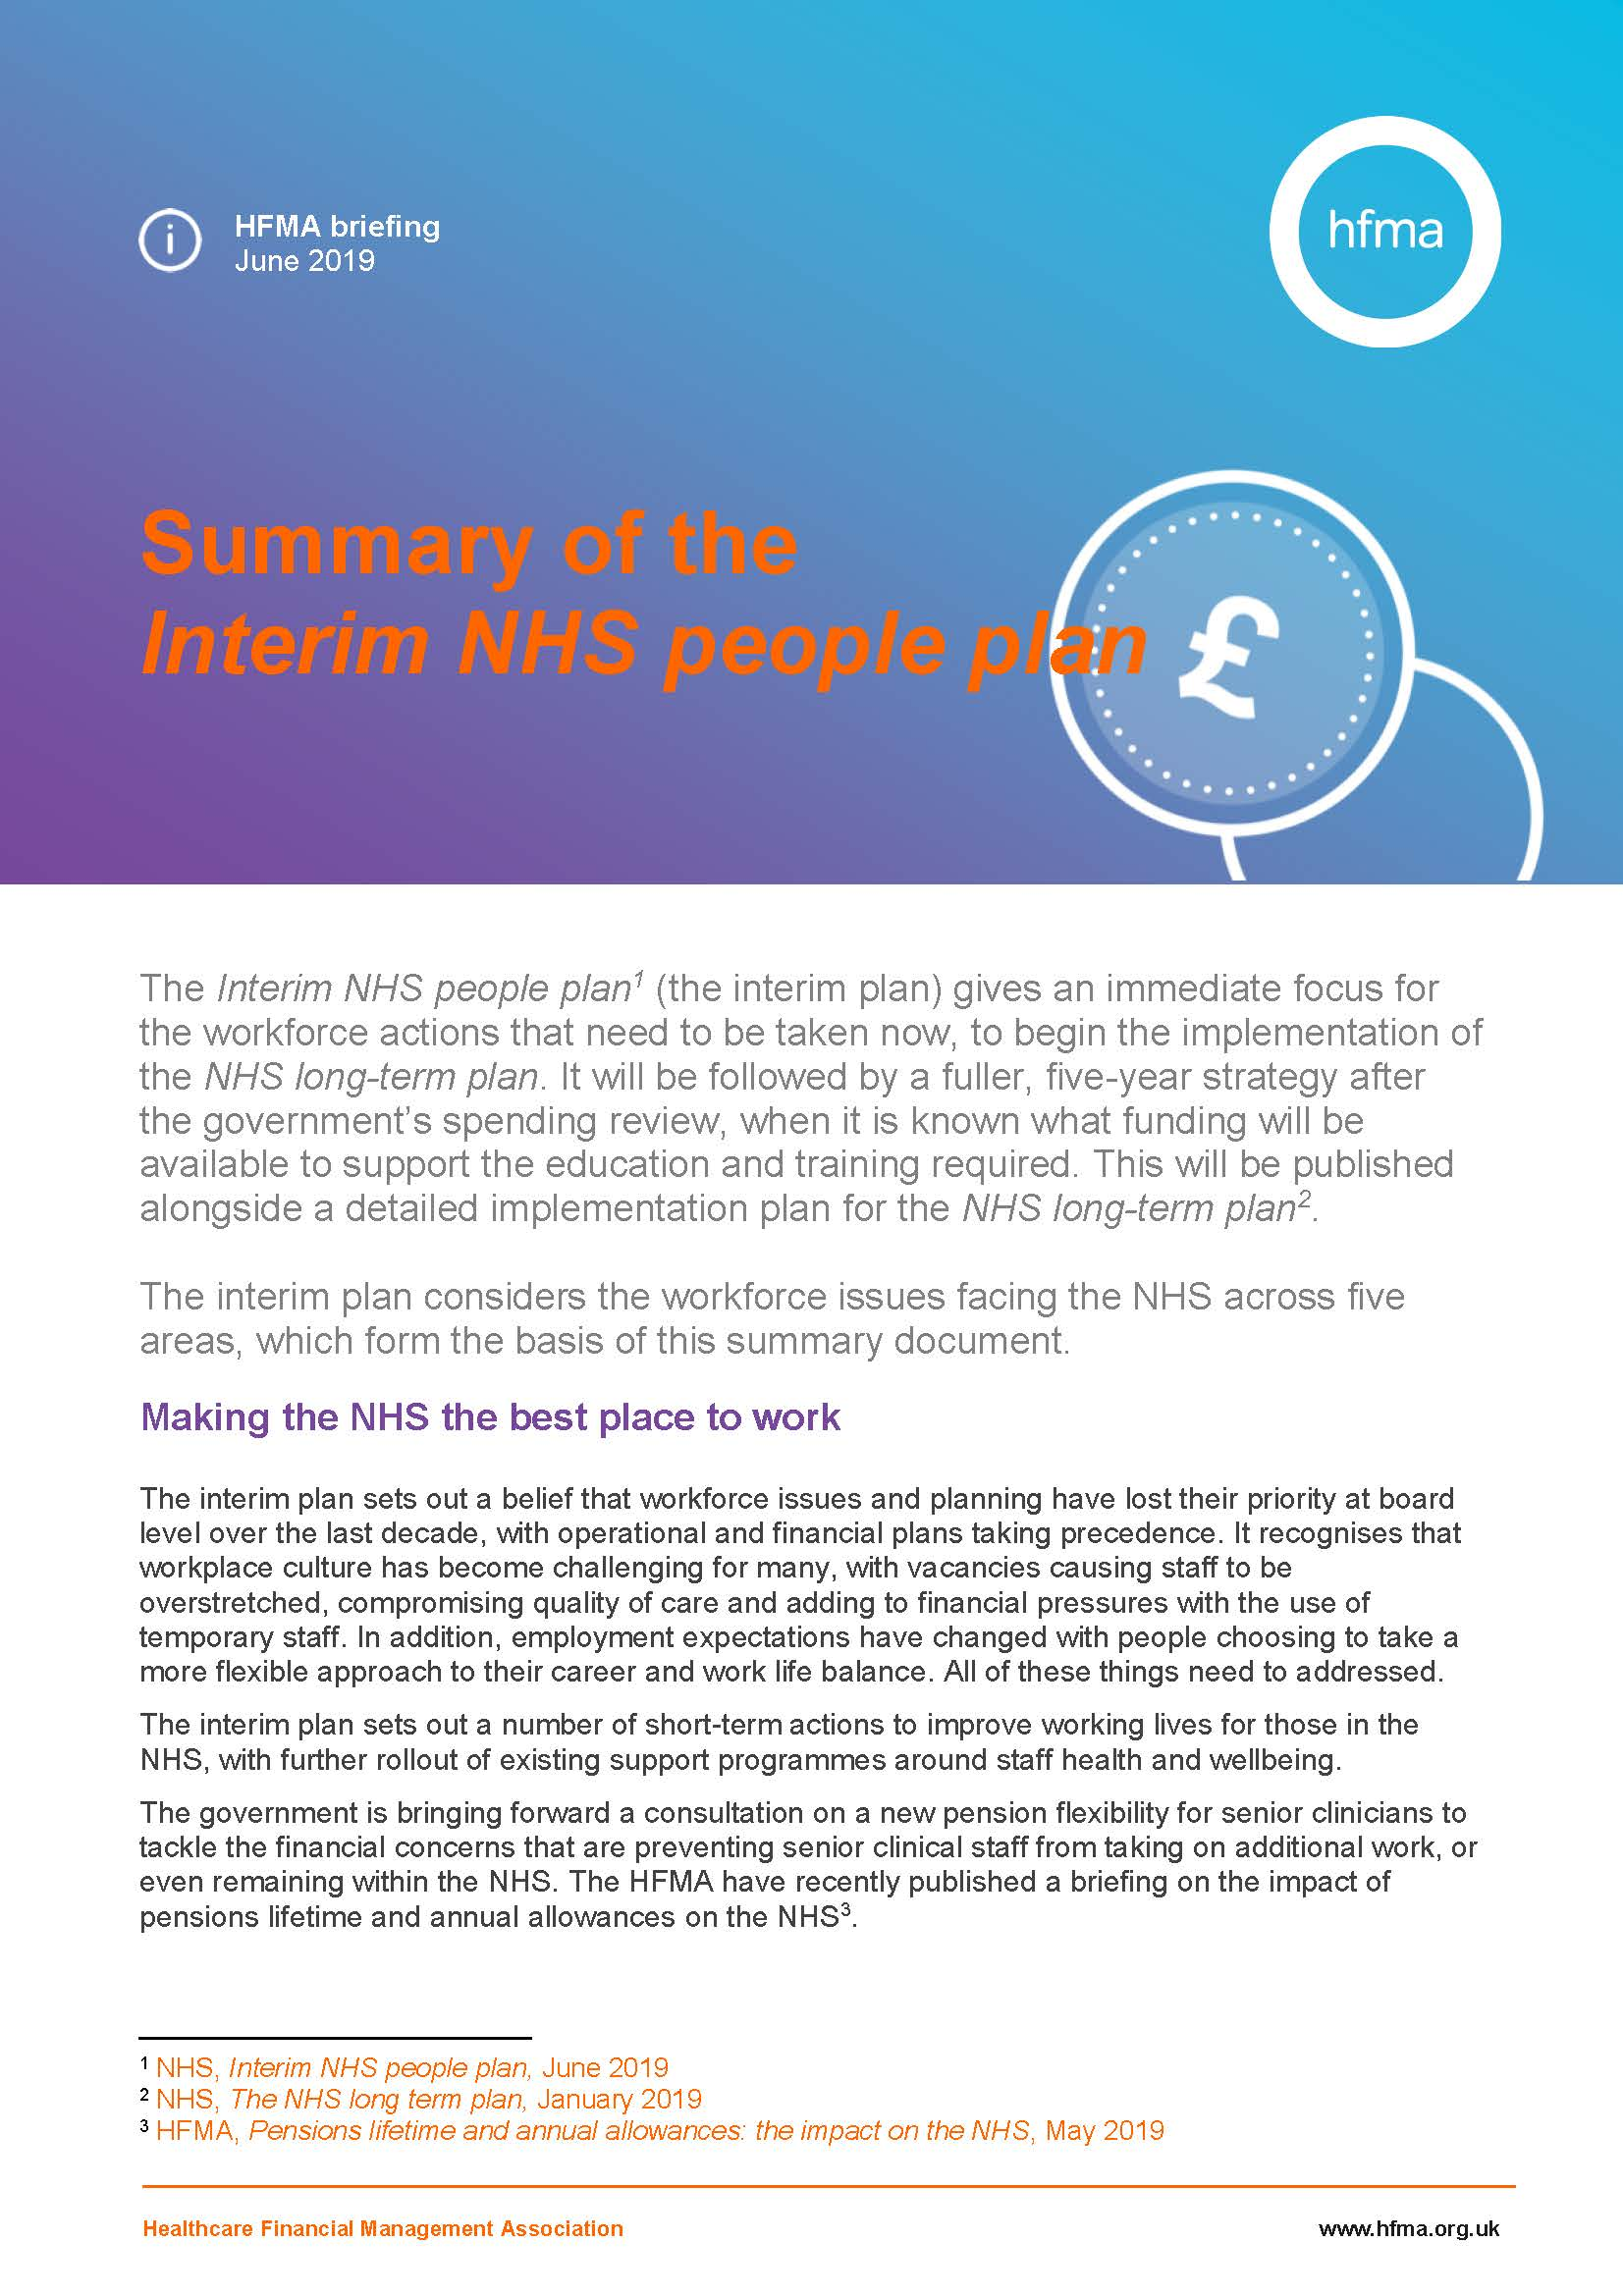 Summary of the Interim NHS people plan